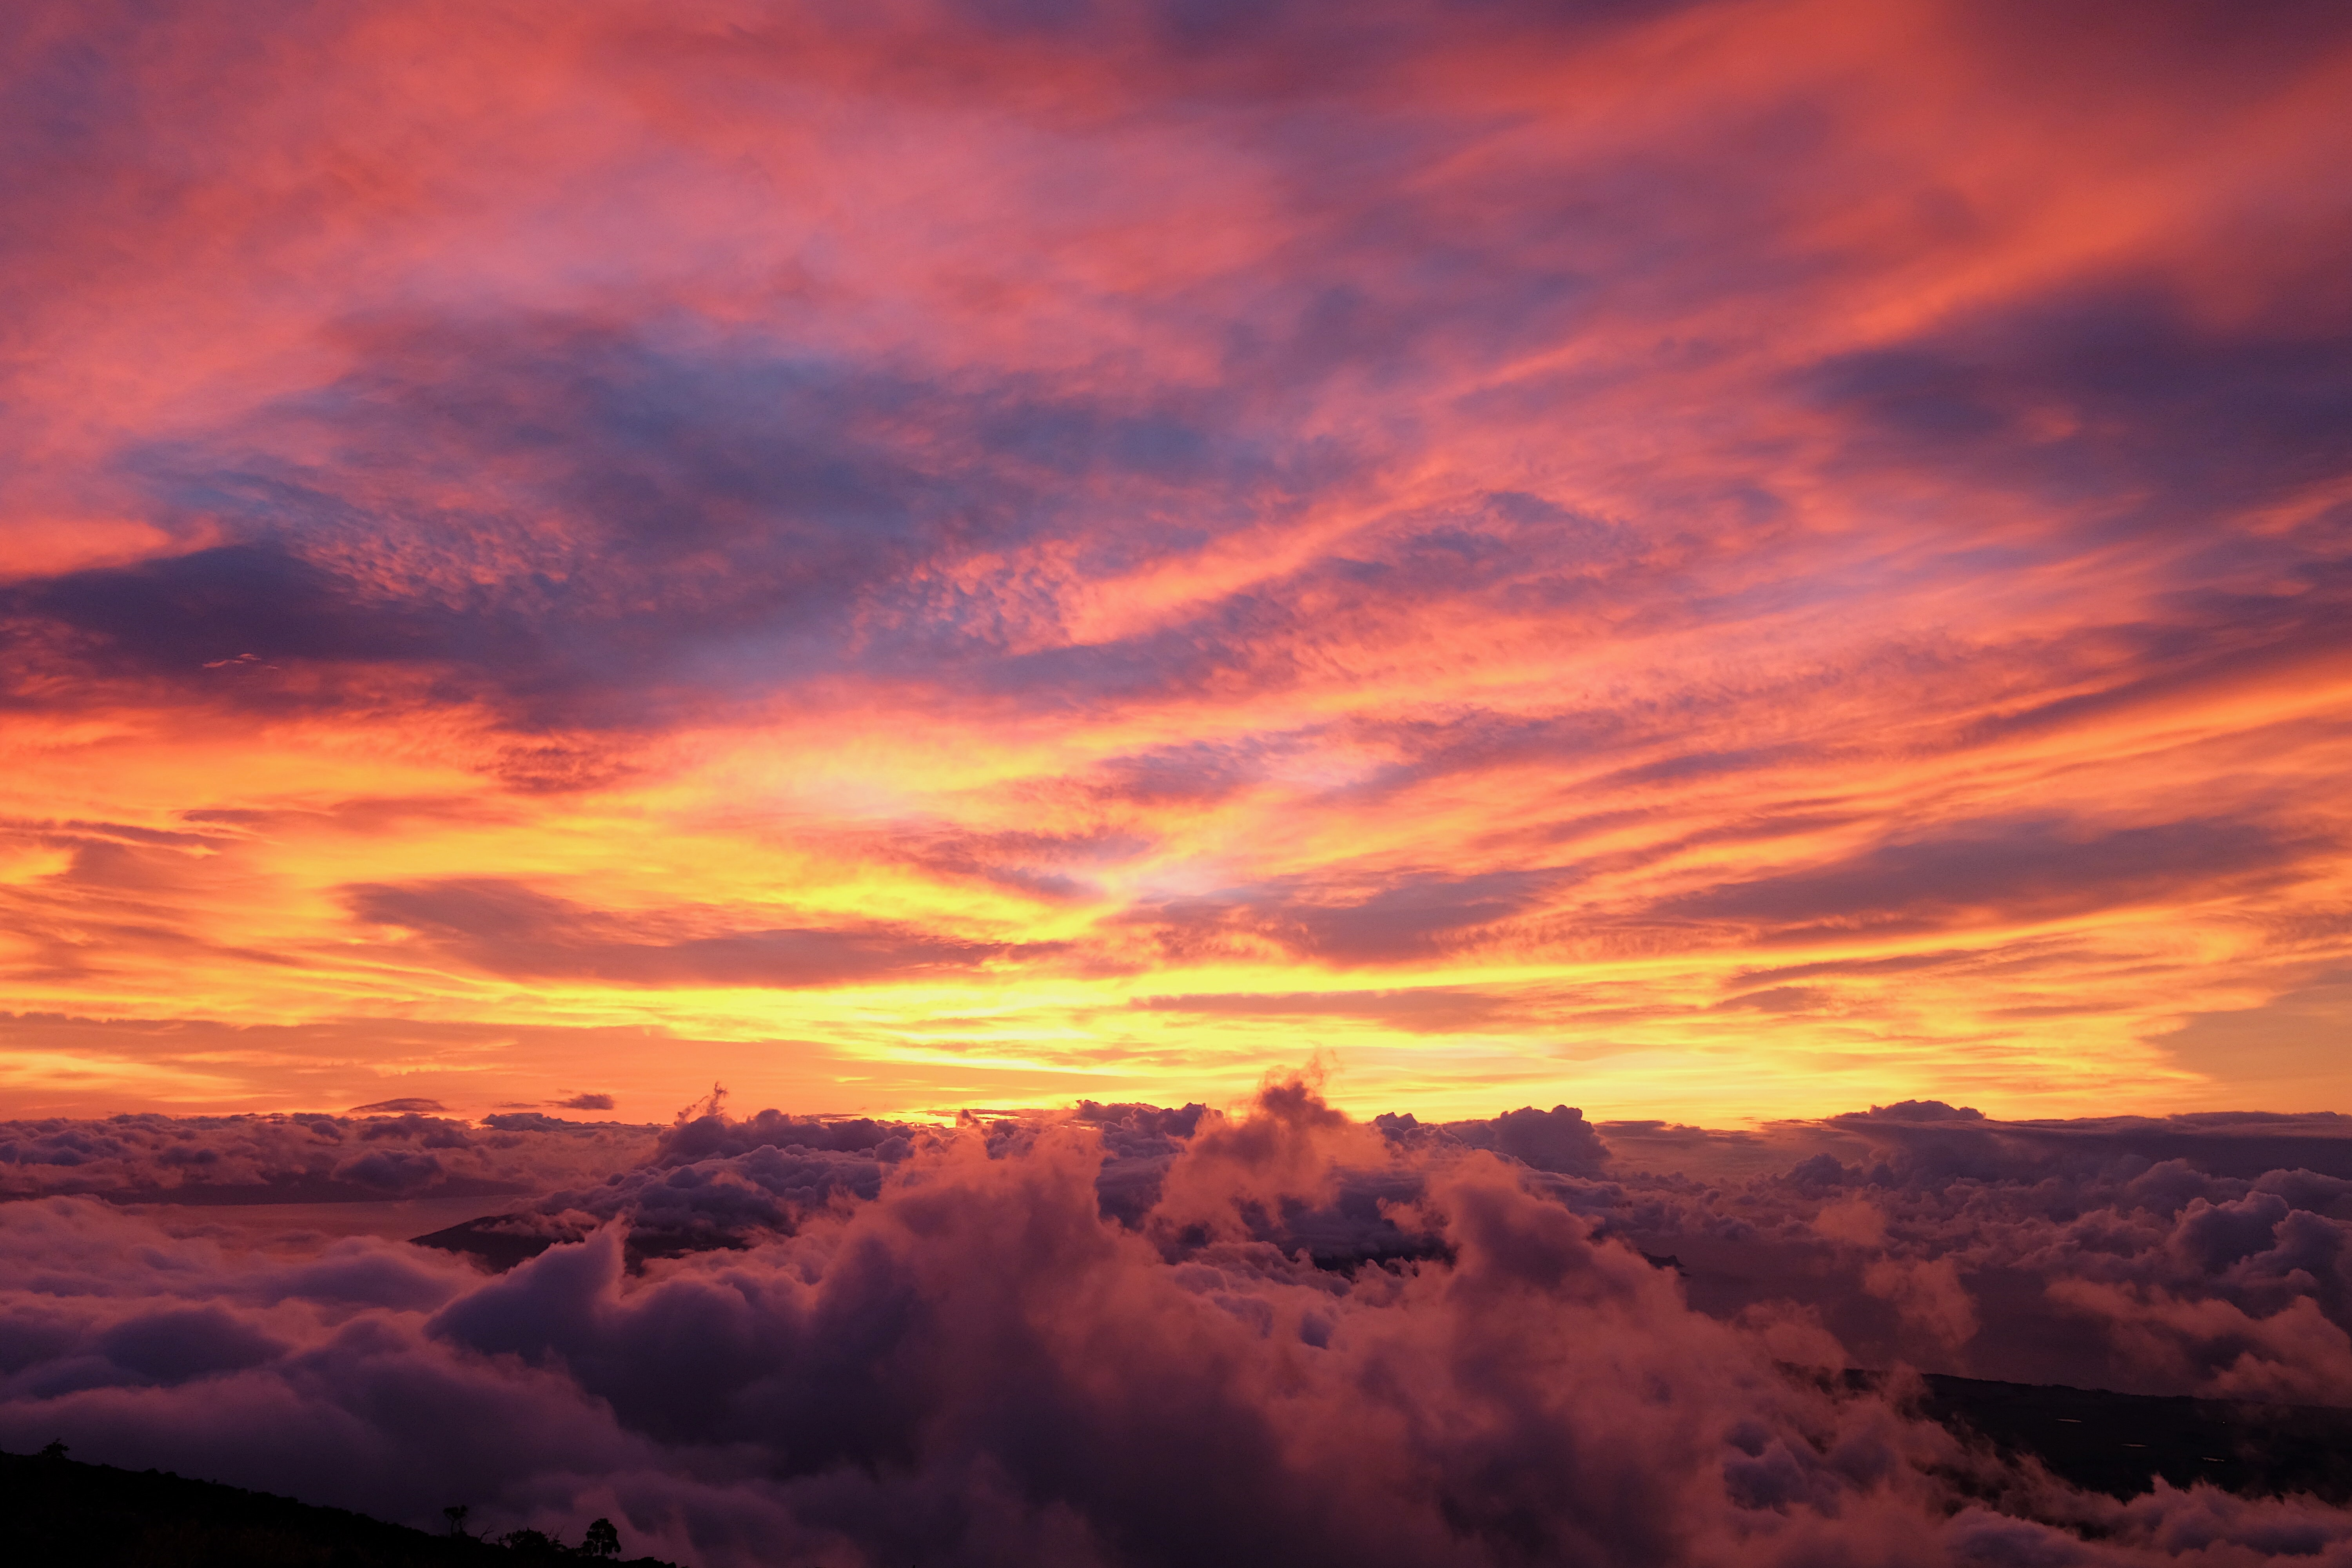 sunset covered by clouds